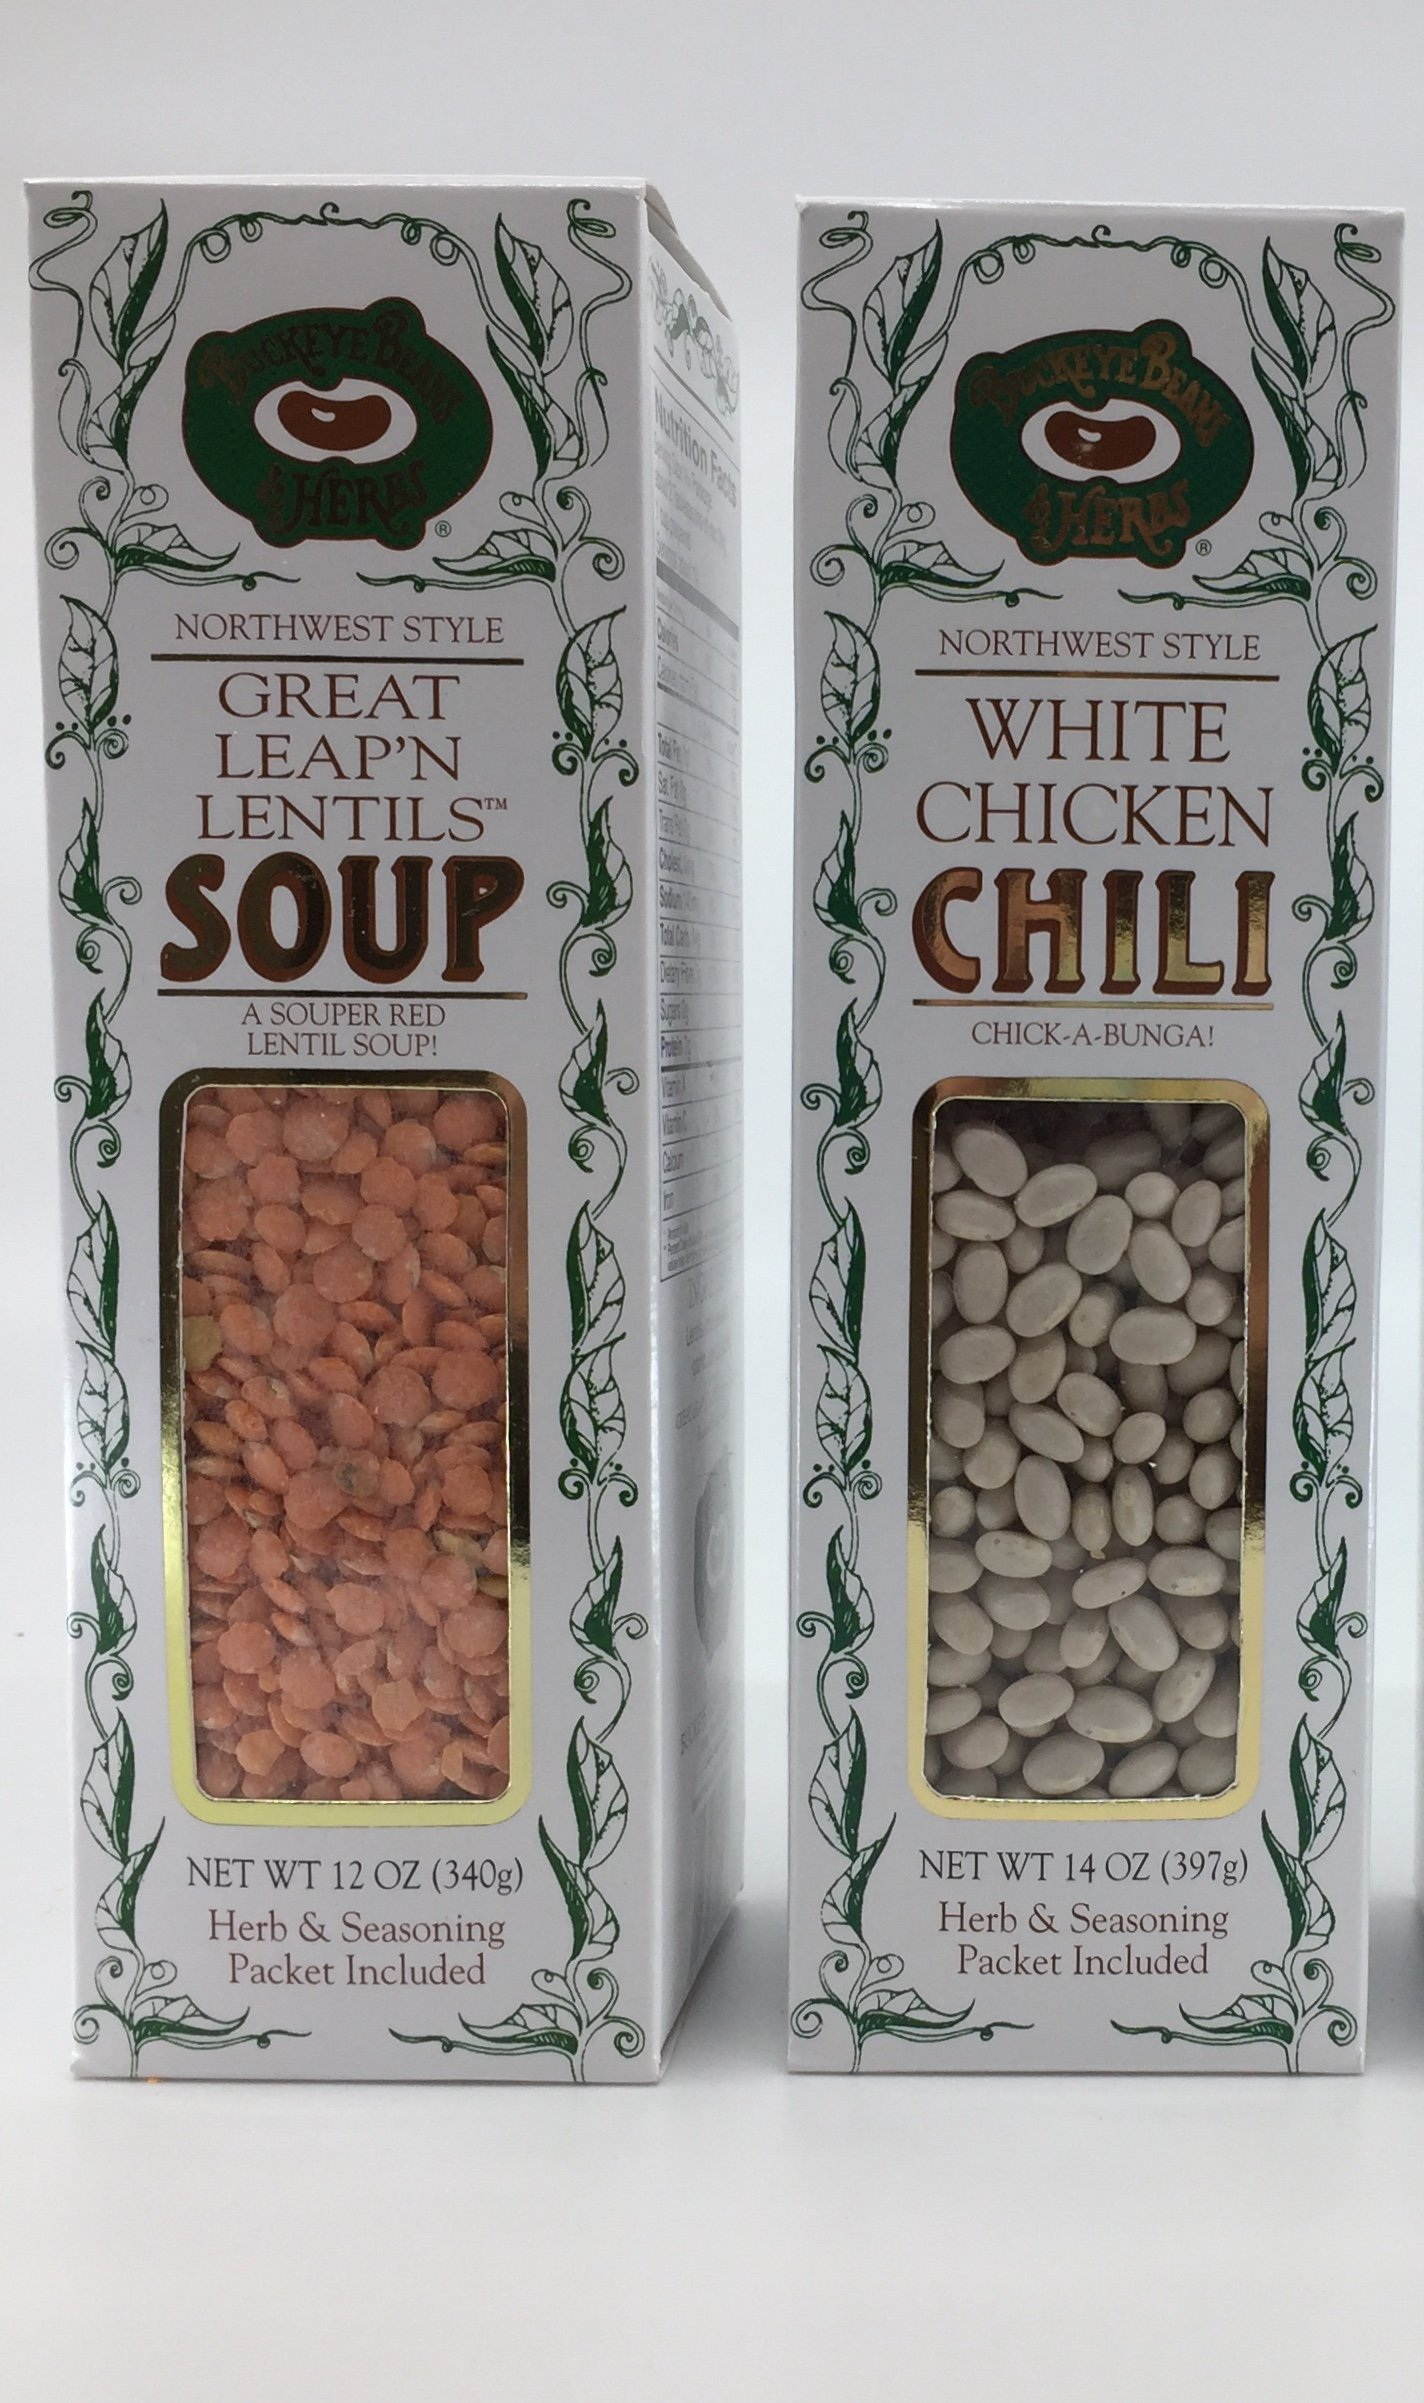 Buckeye Beans & Herbs Soup and Chili Variety of 3: Great Leap'n Lentil, Country Split Pea Soup and White Chicken Chili –12-14-14 Ounces Each (3 Items) by Buckeye Beans & Herbs customs